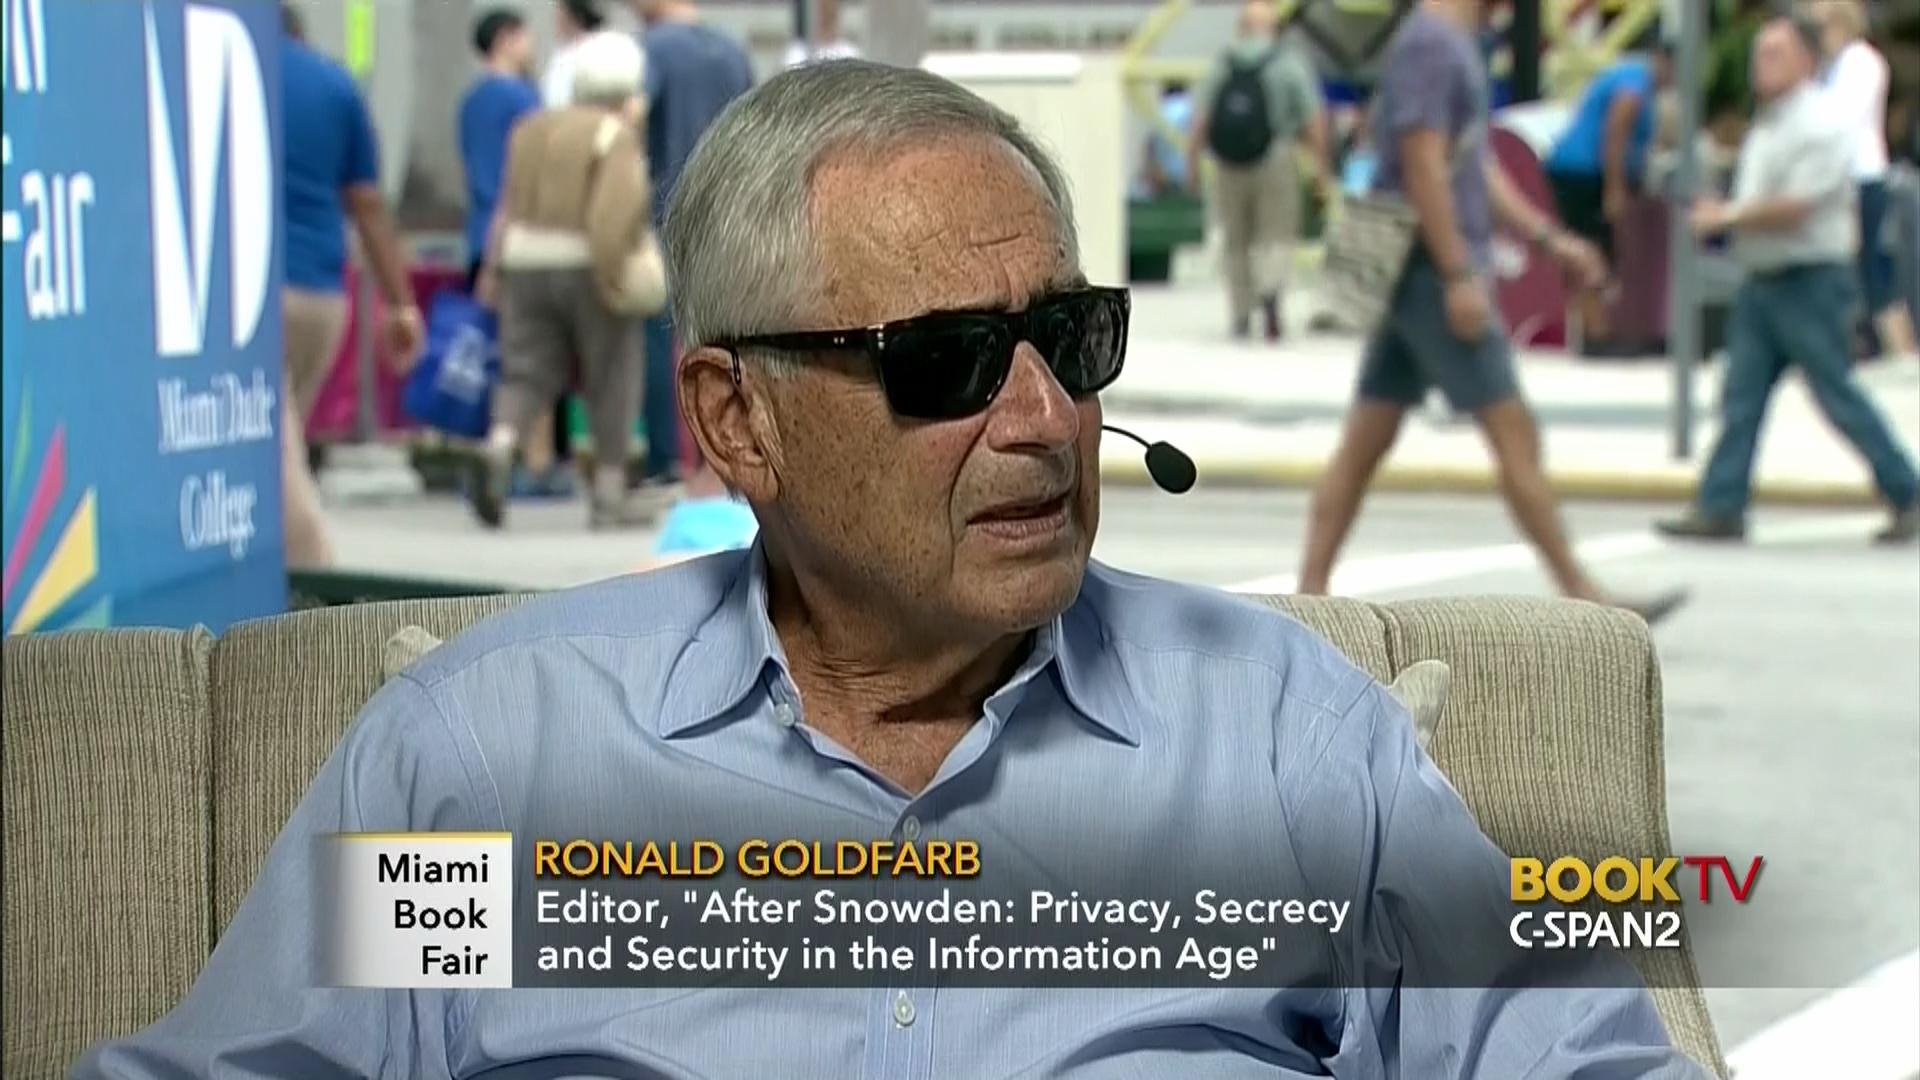 interview ronald goldfarb video c span org